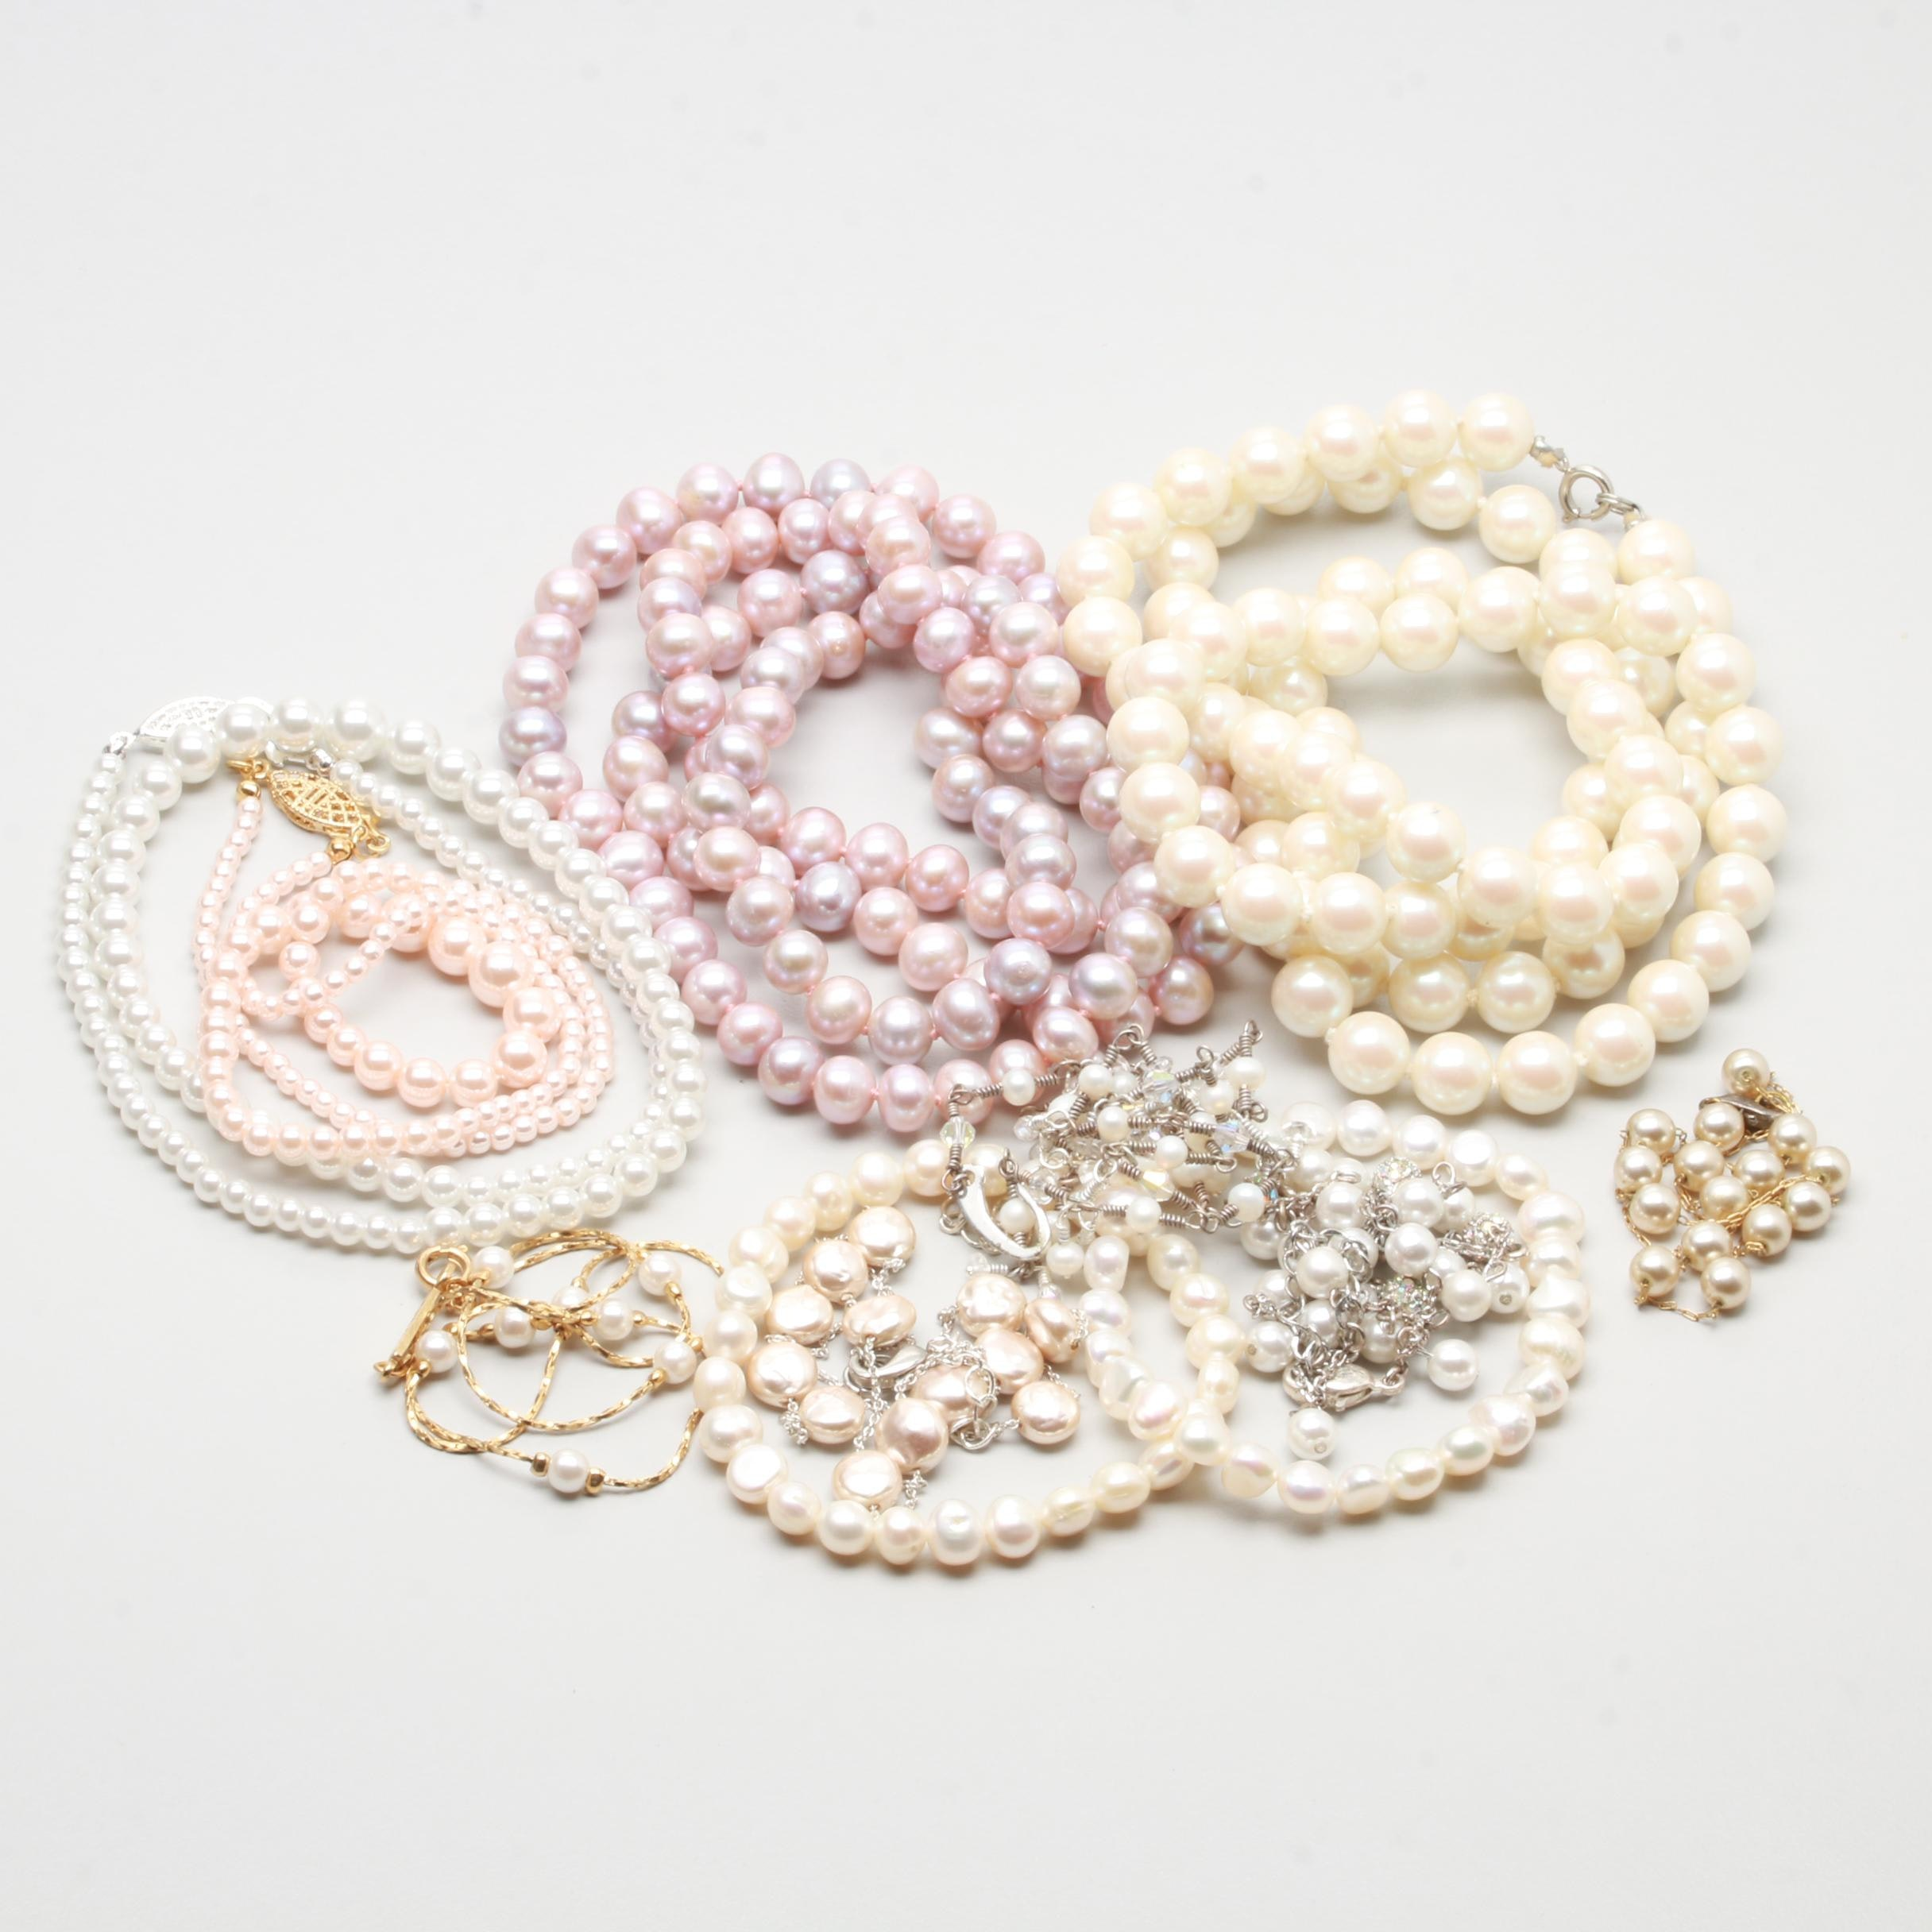 Silver and Gold Tone Jewelry Selection Including Cultured and Imitation Pearl